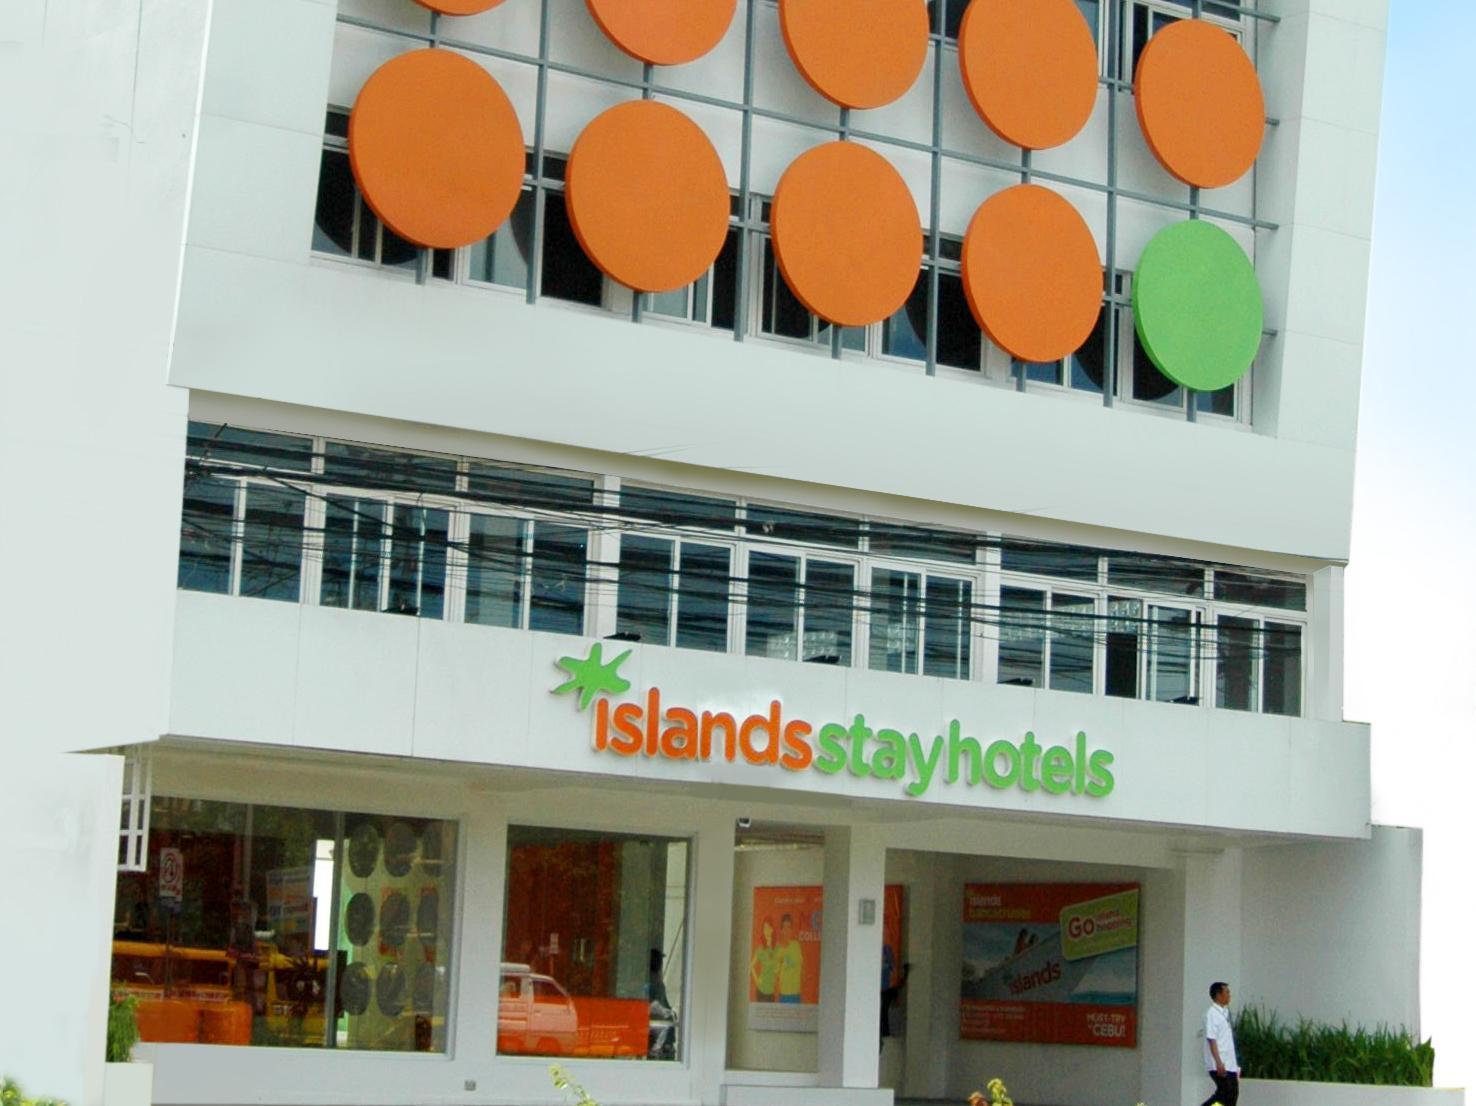 Islands Stay Hotels - Mactan Cebu - Tampilan Luar Hotel